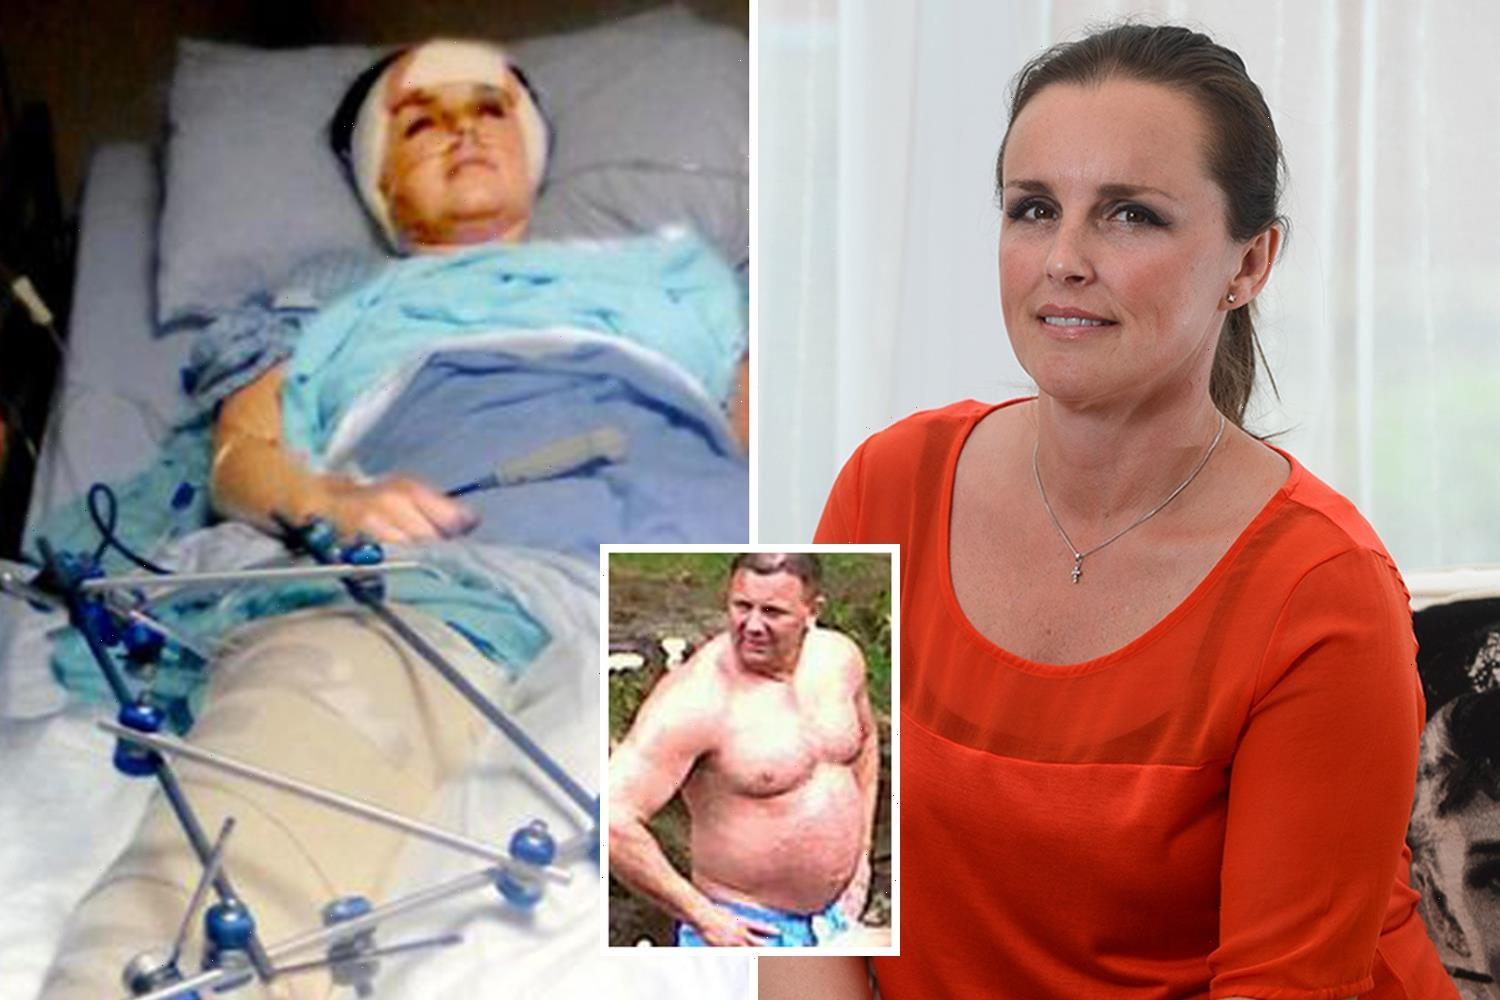 I was shot at point-blank range by my monstrous estranged husband – and then my son killed himself 6 weeks later